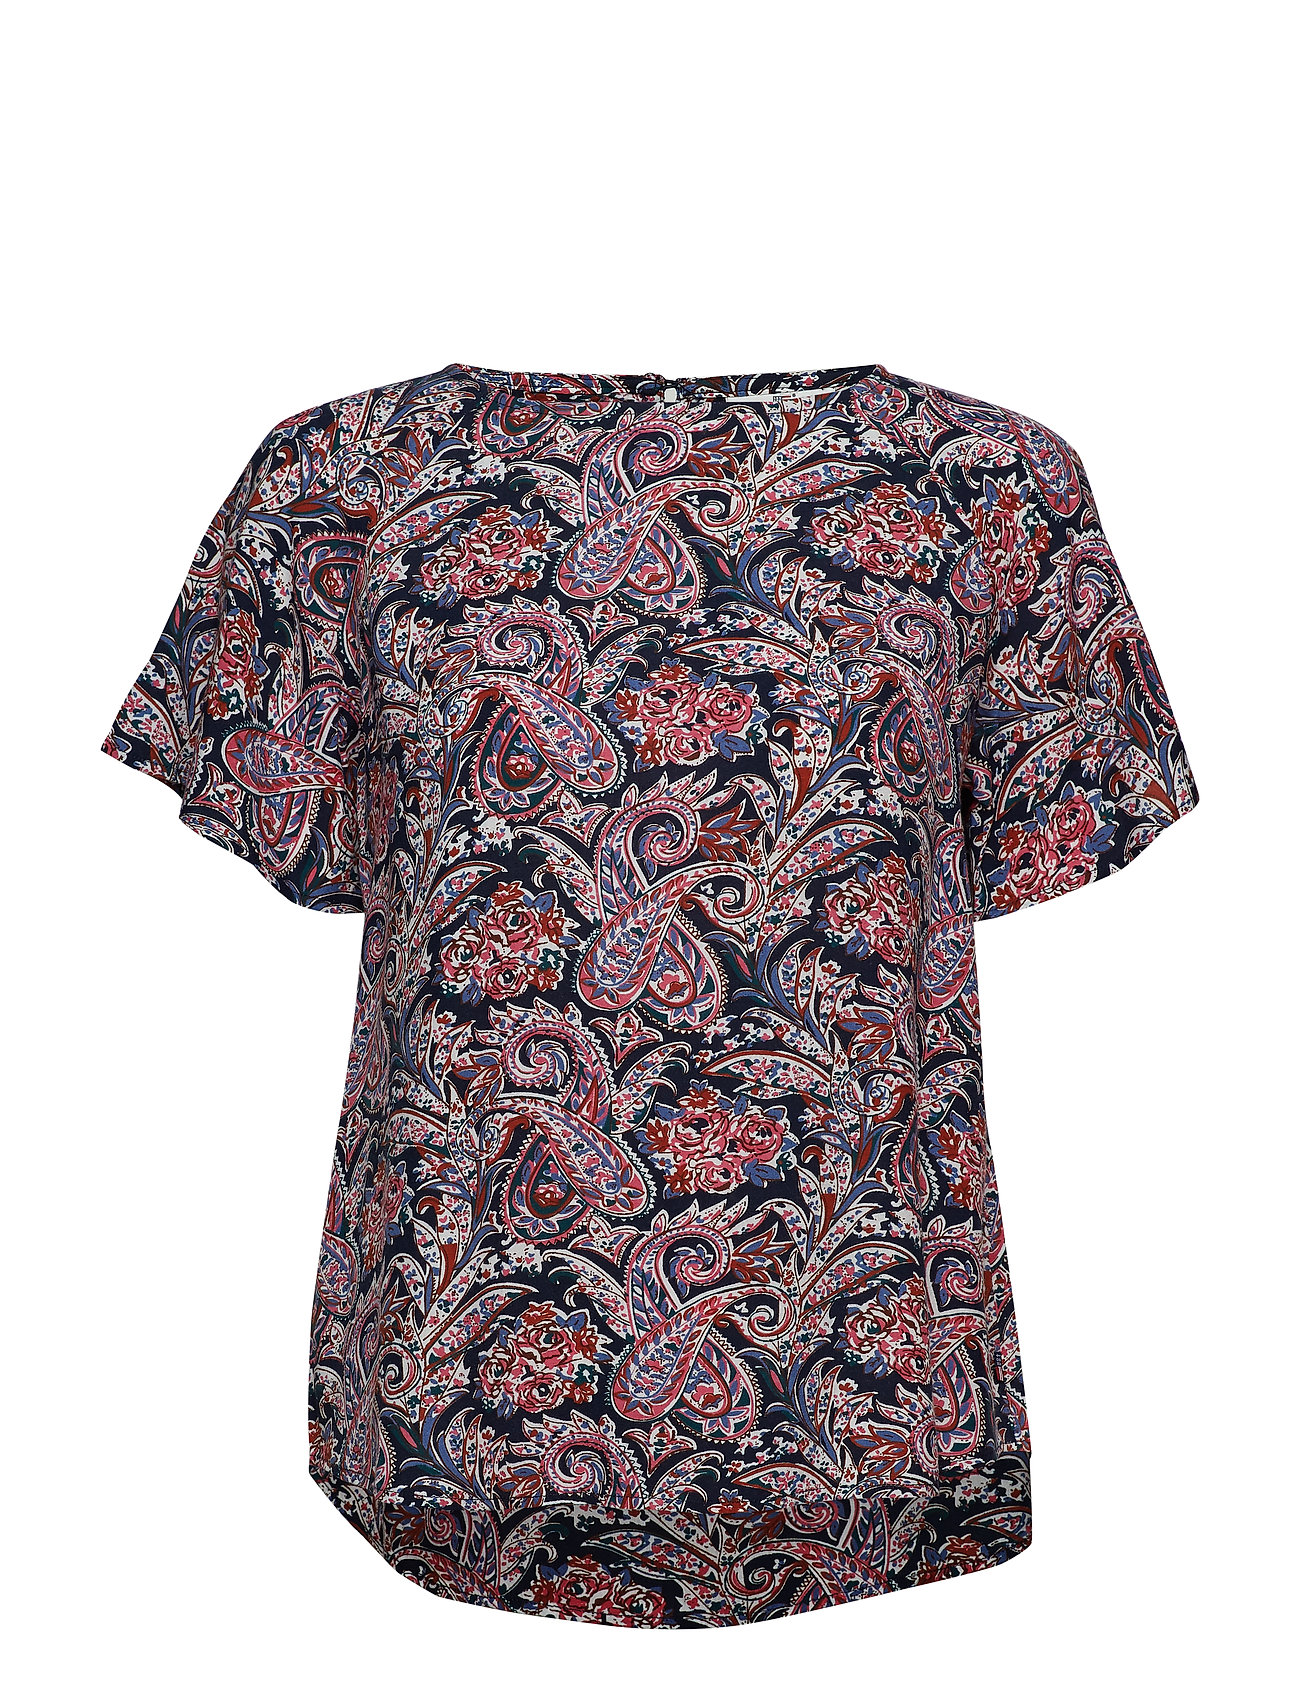 Lexington Clothing Ellis Paisley Top